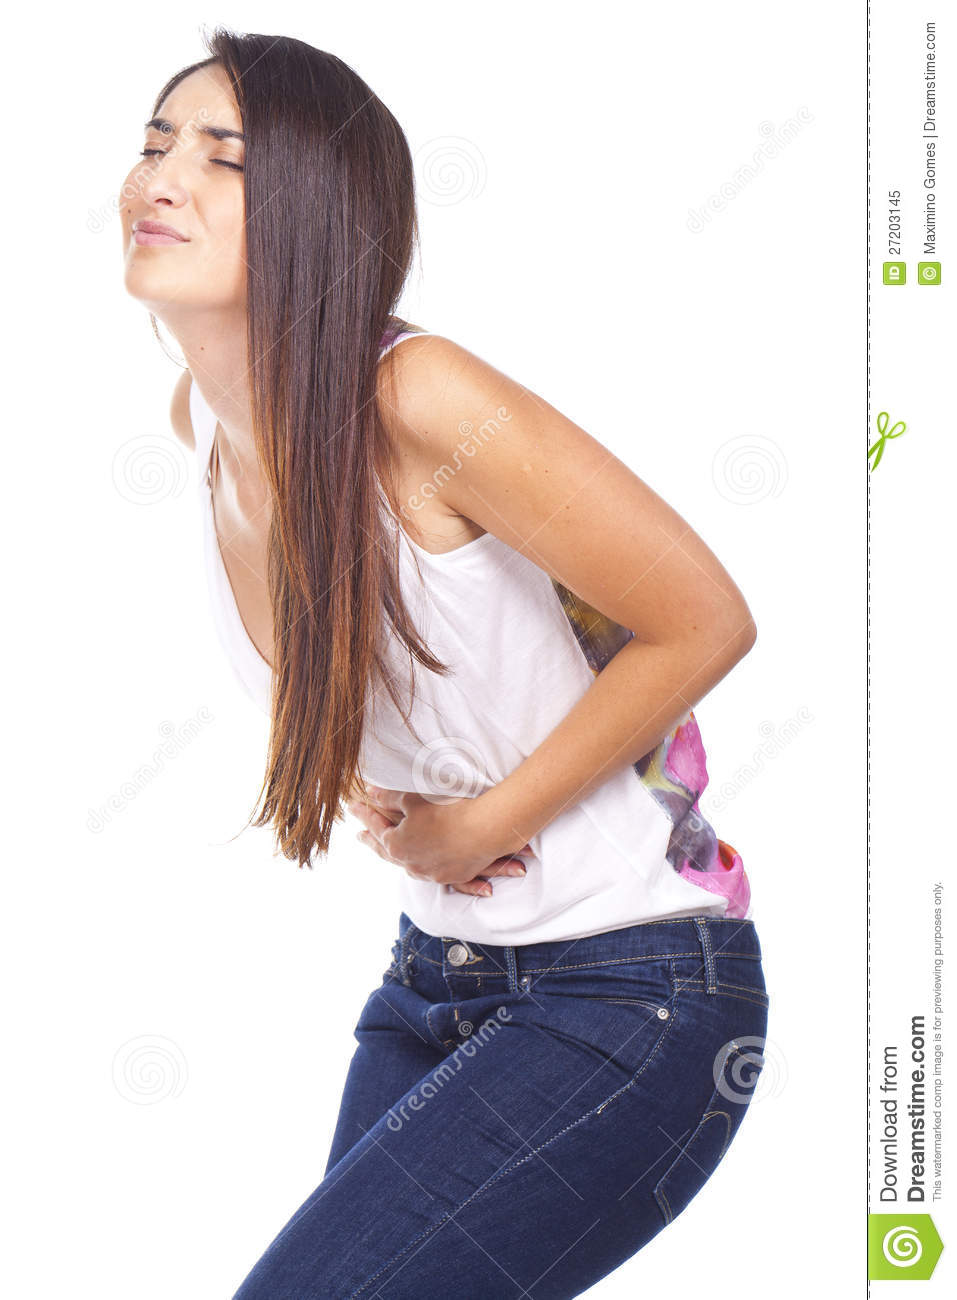 women with stomach aches